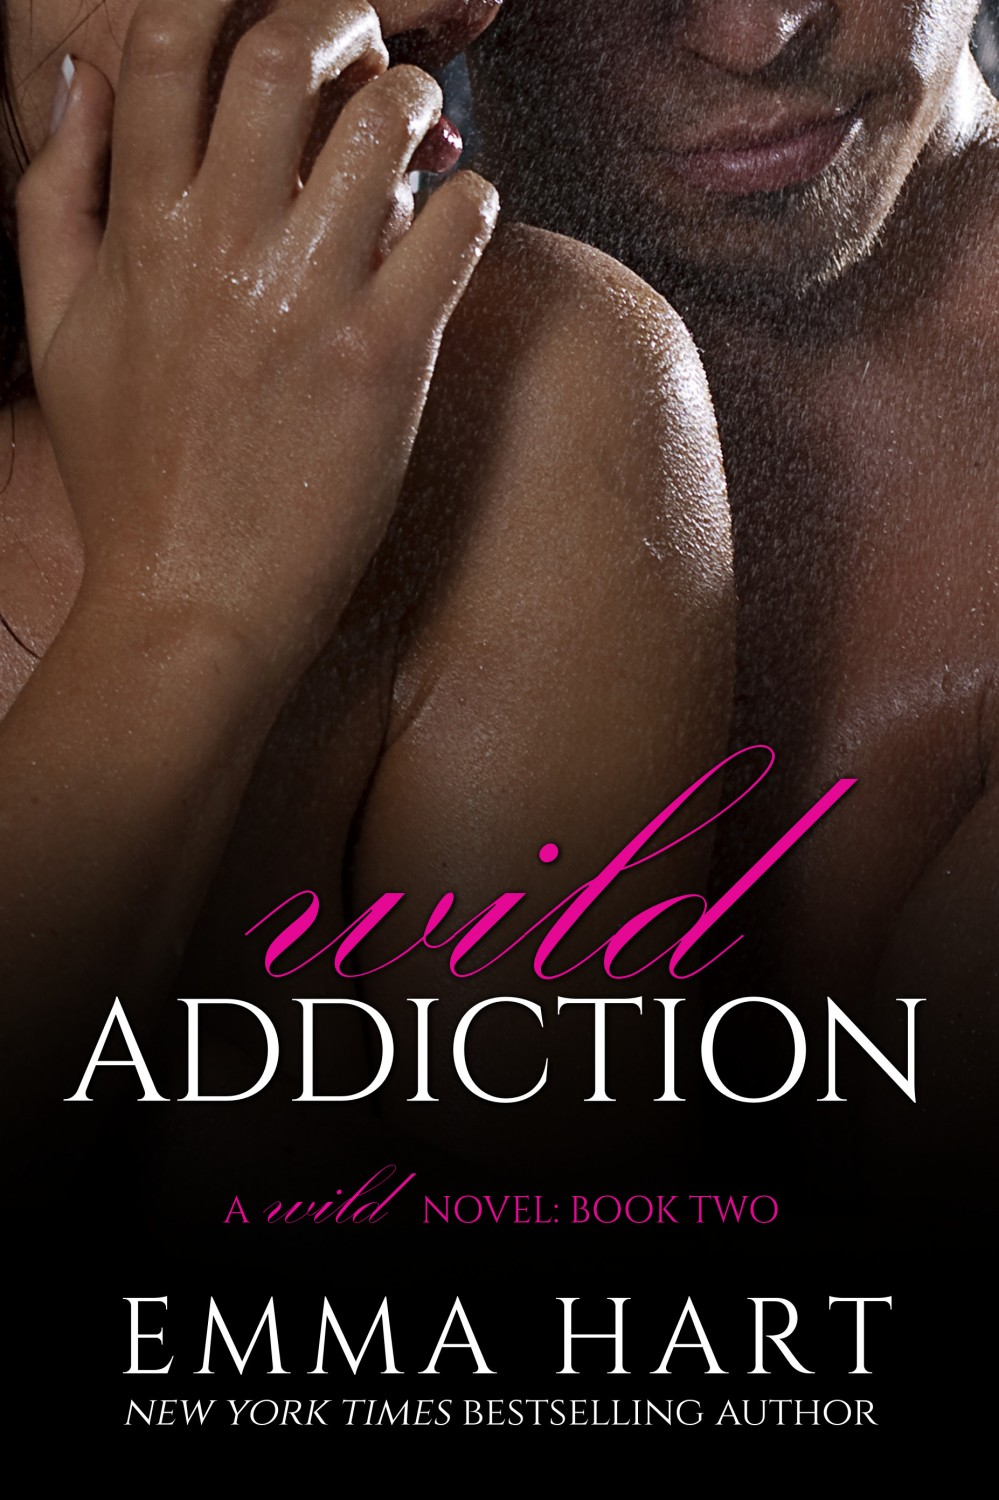 WILDADDICTIONCOVER2